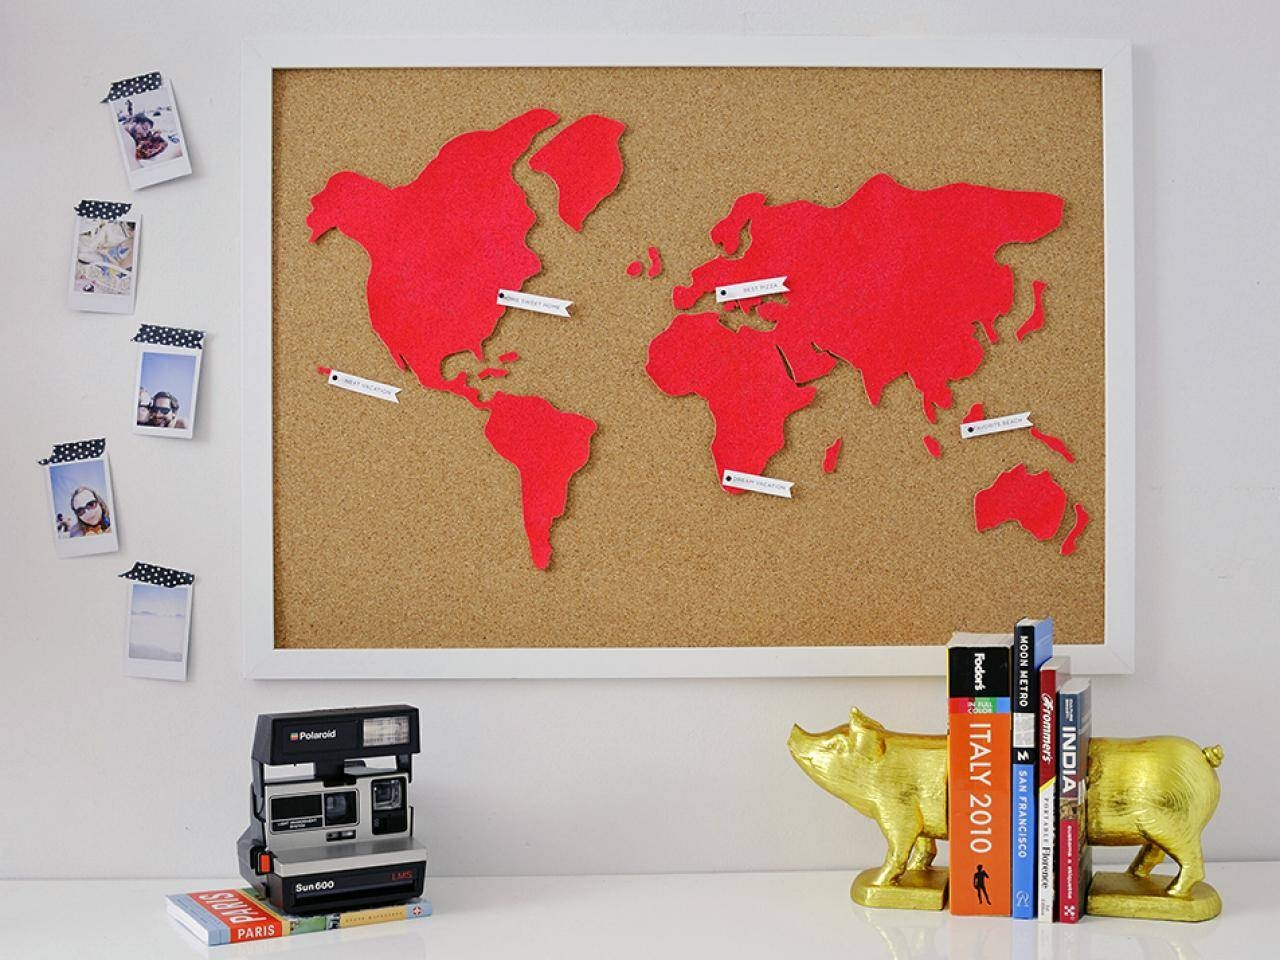 Diy Wall Art: Make A Custom Corkboard World Map | Hgtv In Recent Custom Map Wall Art (View 3 of 20)